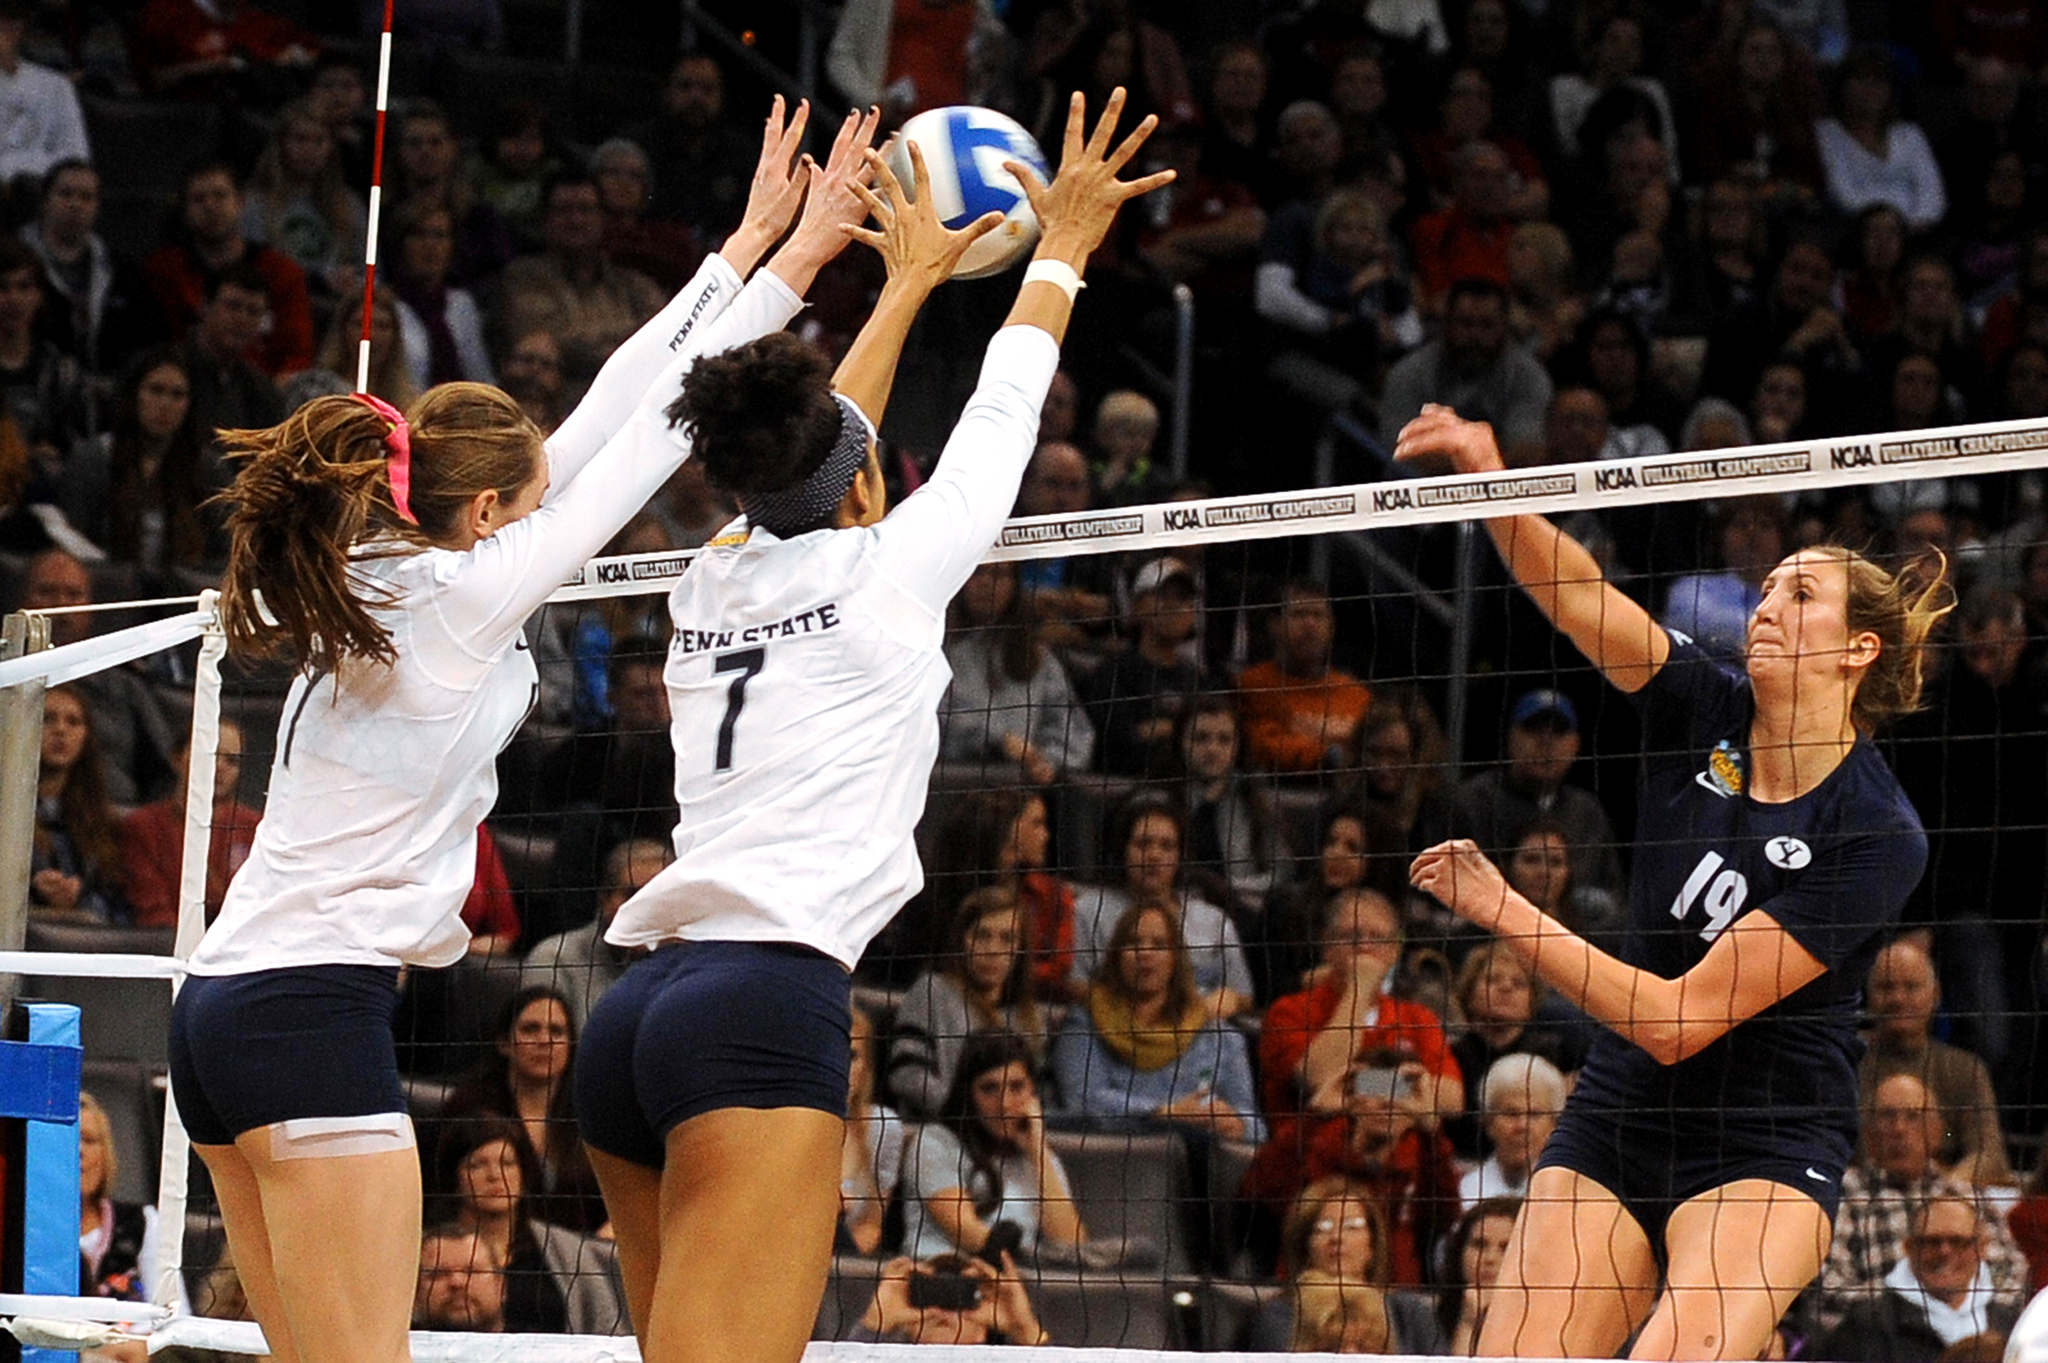 NCAA Volleyball Final: Megan Courtney And Nia Grant